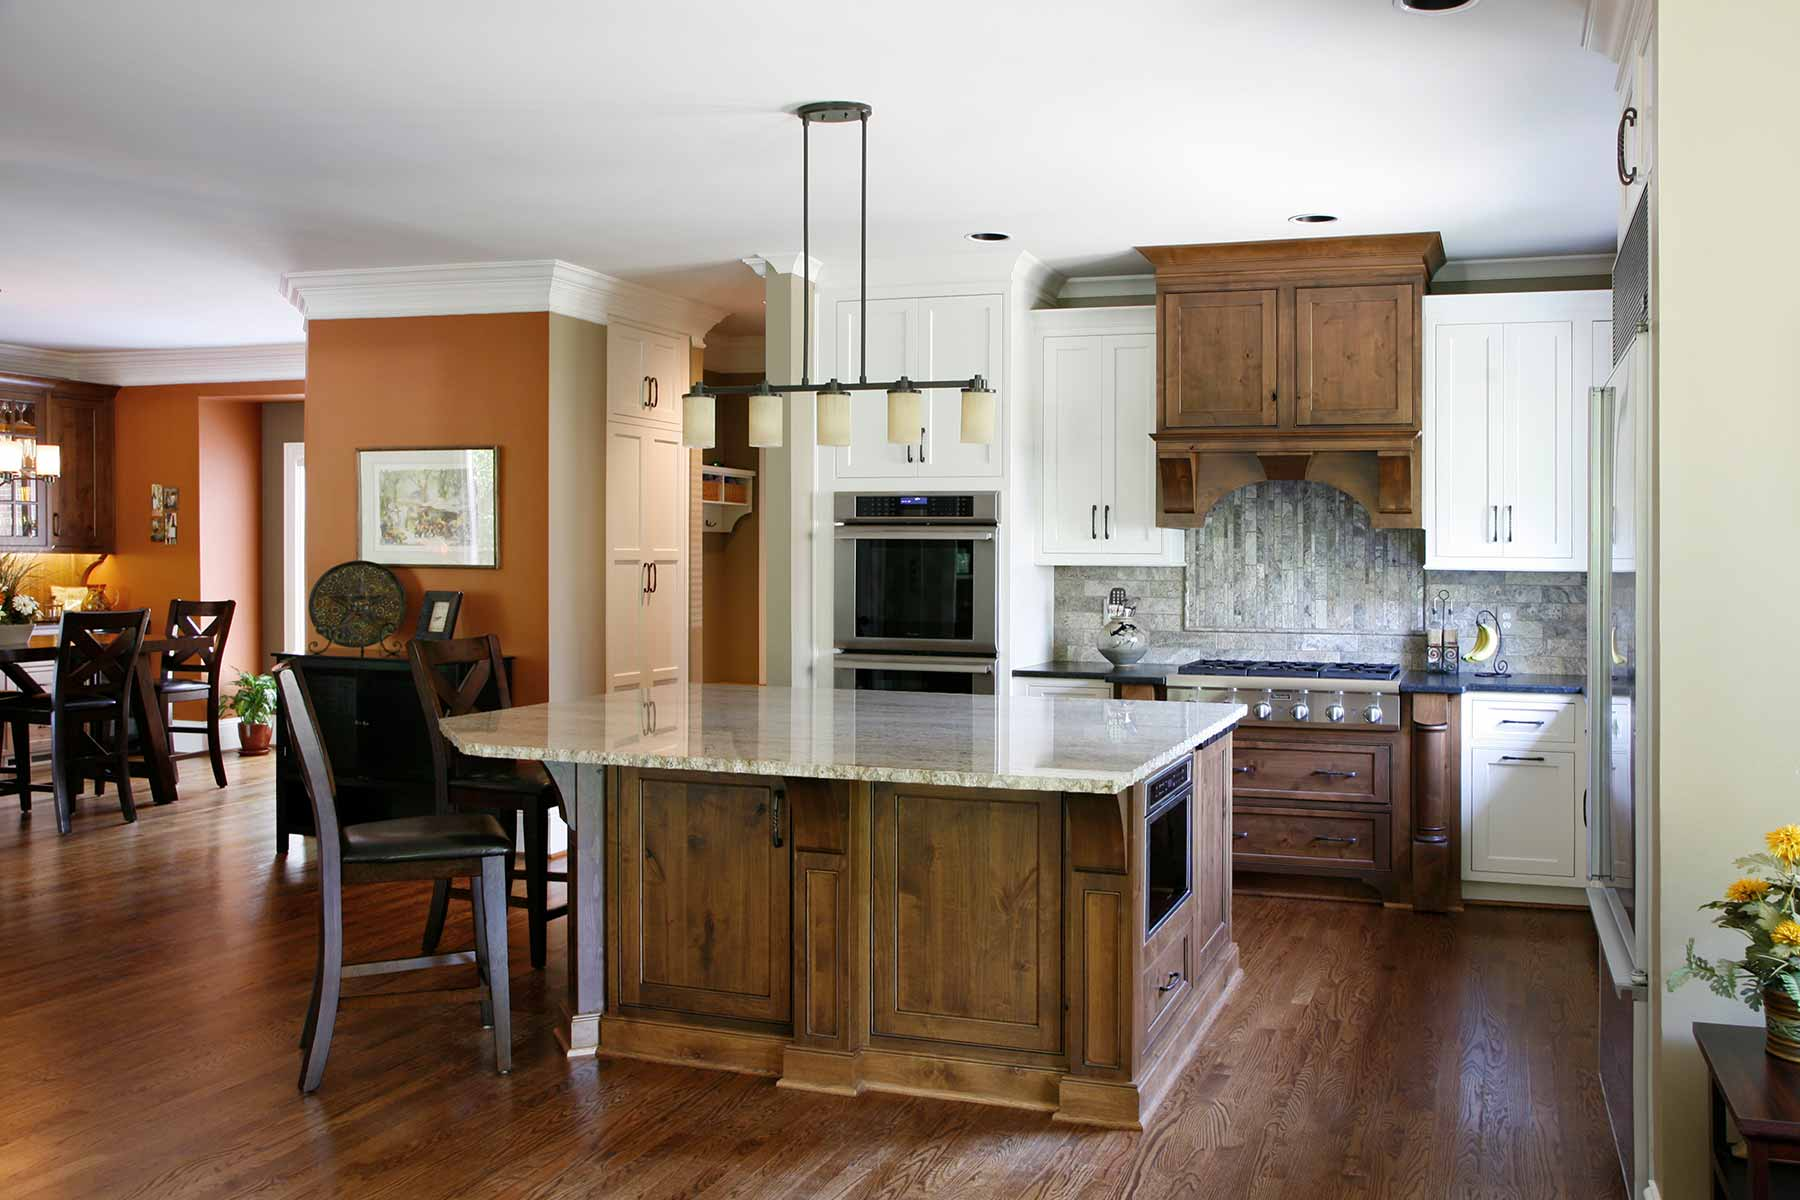 Natural wood and stone finishes were used in this kitchen remodel